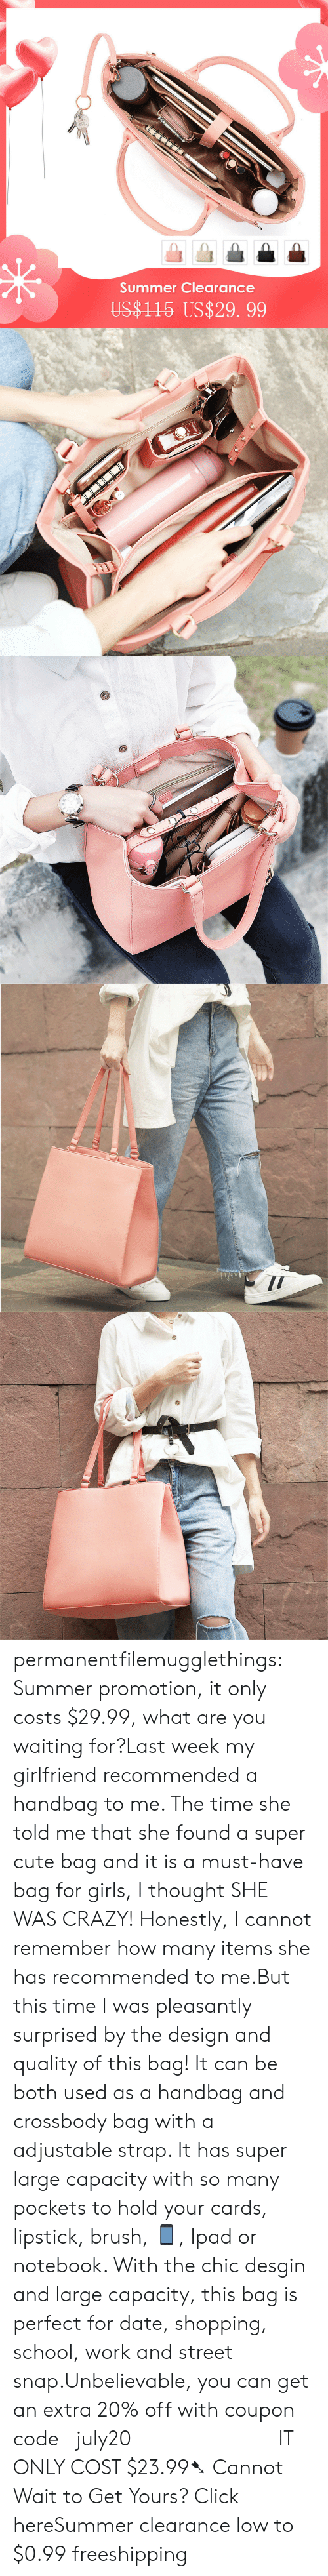 handbag: Summer Clearance  US$1 15 US$29. 99 permanentfilemugglethings:  Summer promotion, it only costs $29.99, what are you waiting for?Last week my girlfriend recommended a handbag to me. The time she told me that she found a super cute bag and it is a must-have bag for girls, I thought SHE WAS CRAZY! Honestly, I cannot remember how many items she has recommended to me.But this time I was pleasantly surprised by the design and quality of this bag! It can be both used as a handbag and crossbody bag with a adjustable strap. It has super large capacity with so many pockets to hold your cards, lipstick, brush, 📱, Ipad or notebook. With the chic desgin and large capacity, this bag is perfect for date, shopping, school, work and street snap.Unbelievable, you can get an extra 20% off with coupon code :july20             IT ONLY COST $23.99➷ Cannot Wait to Get Yours? Click hereSummer clearance low to $0.99  freeshipping